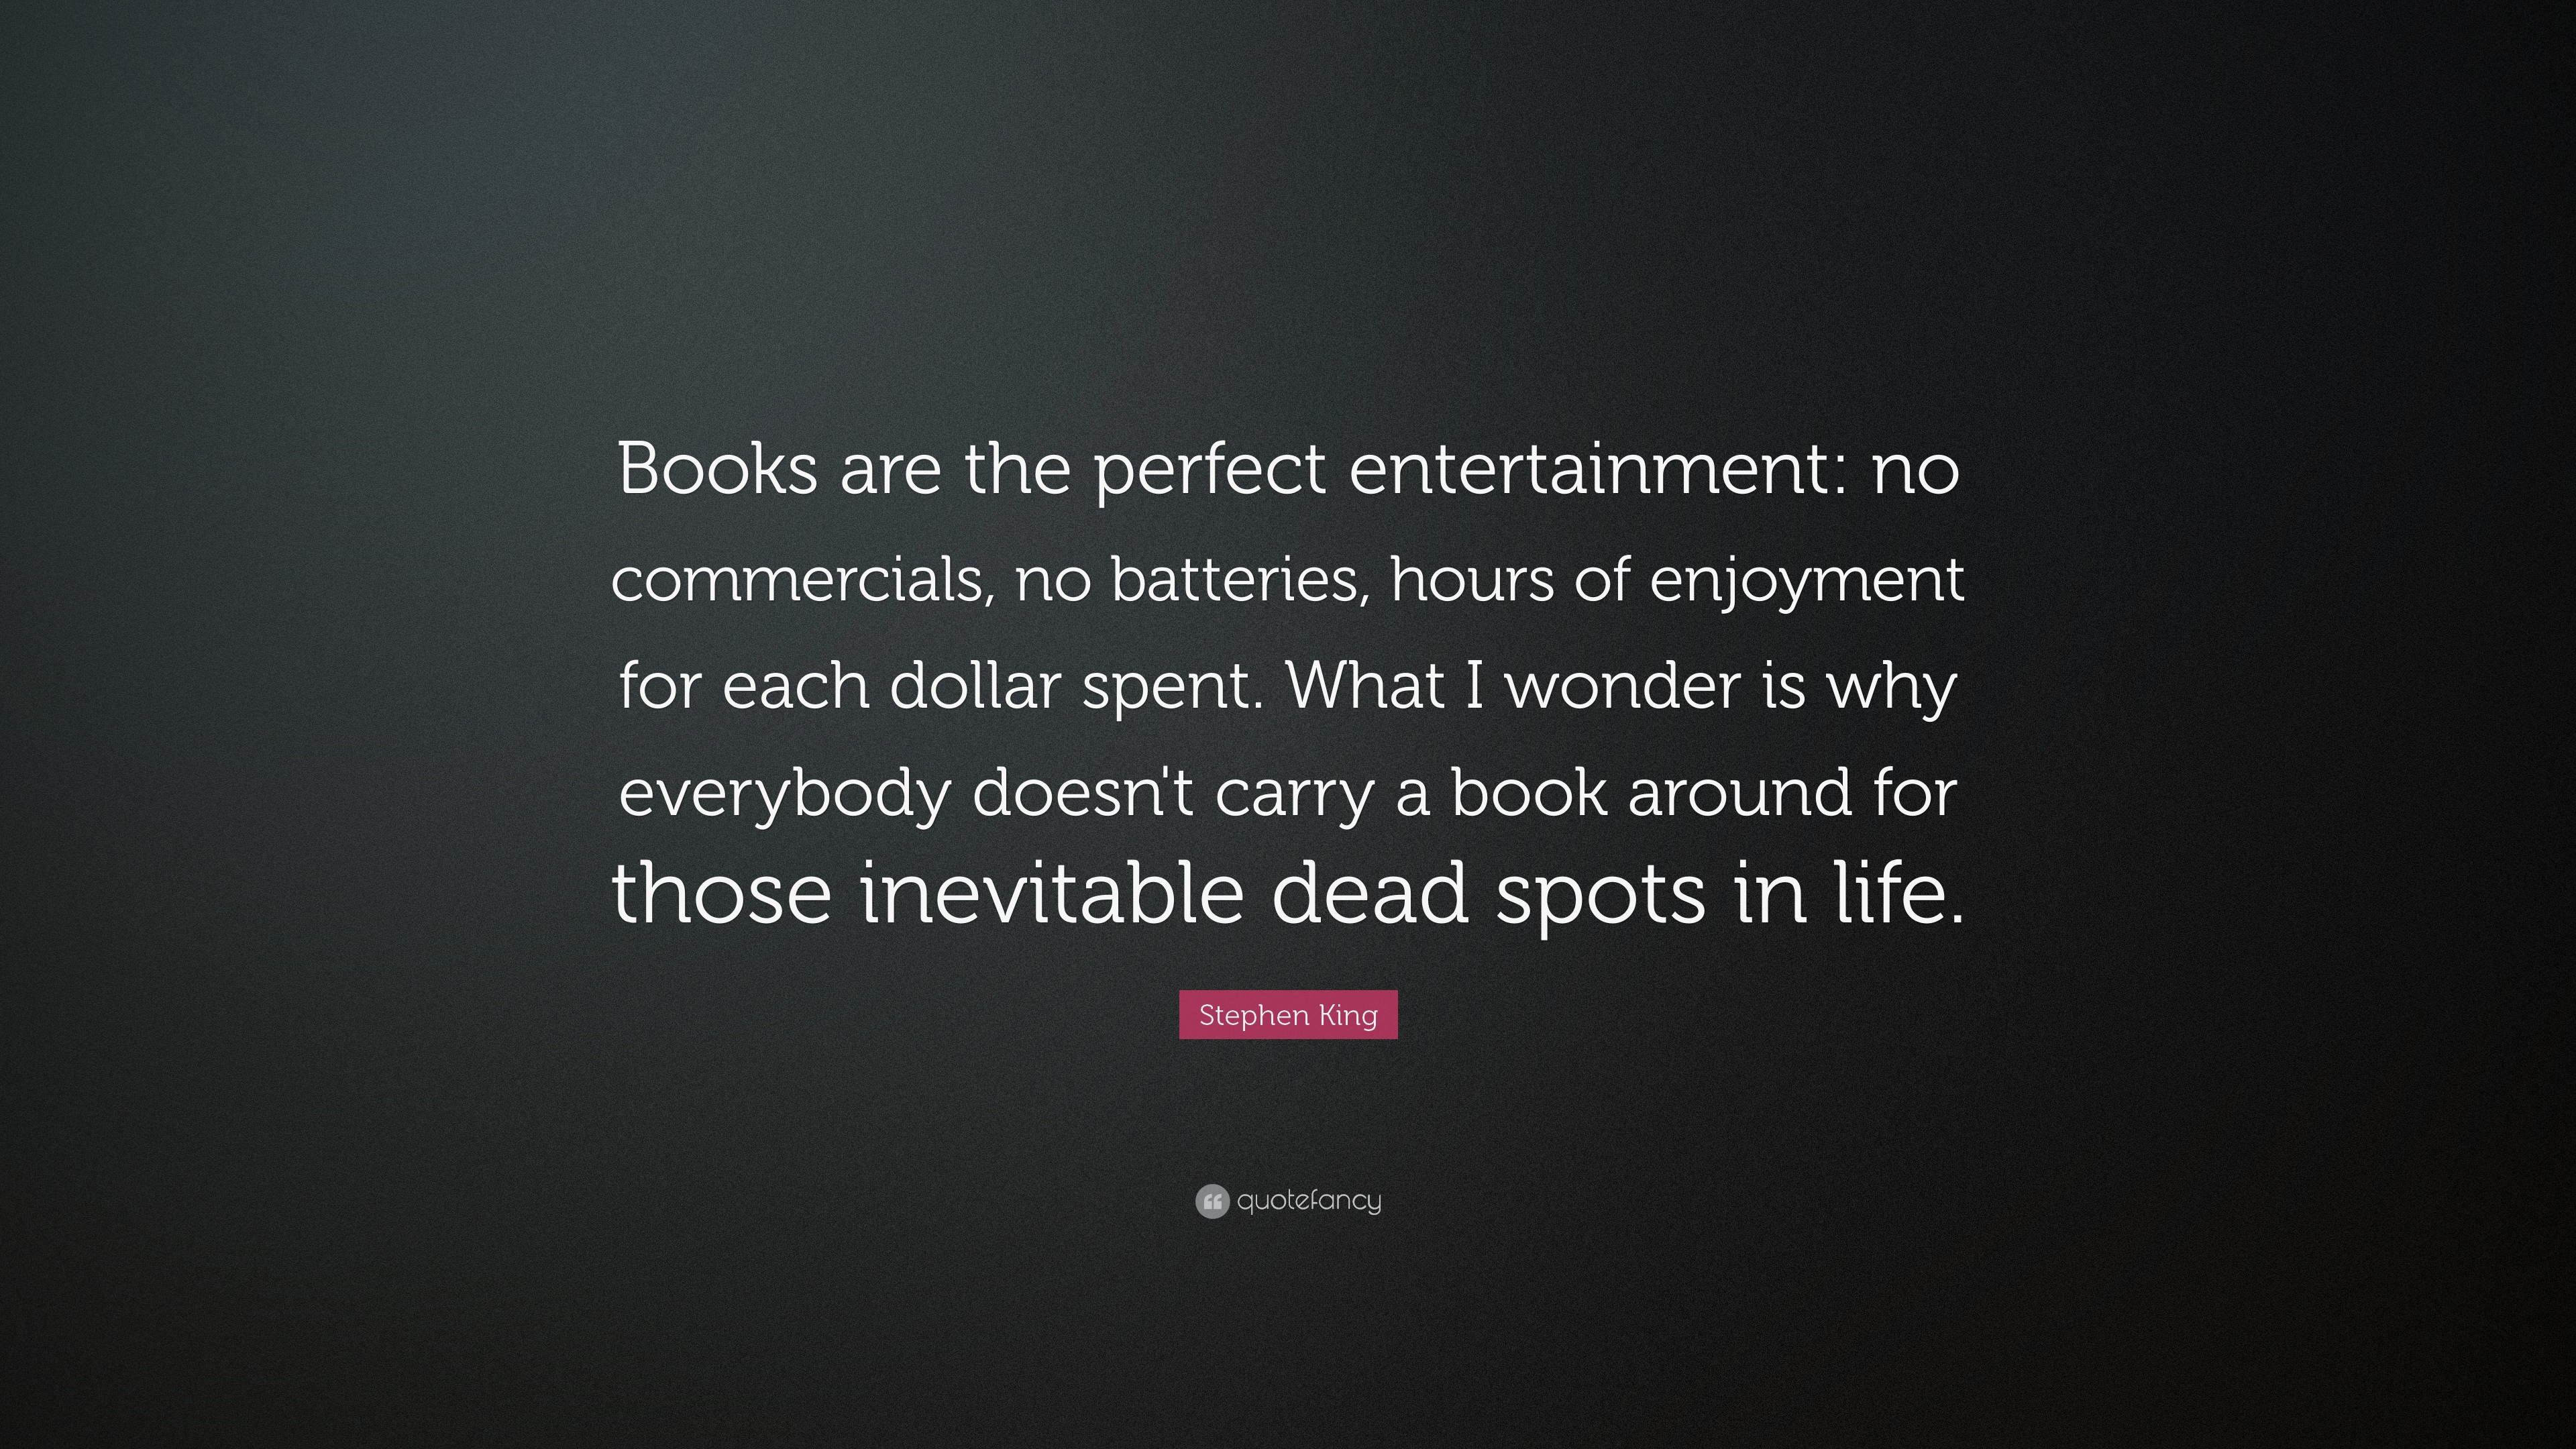 Life Quotes Book Glamorous Quotes About Books And Reading 22 Wallpapers  Quotefancy